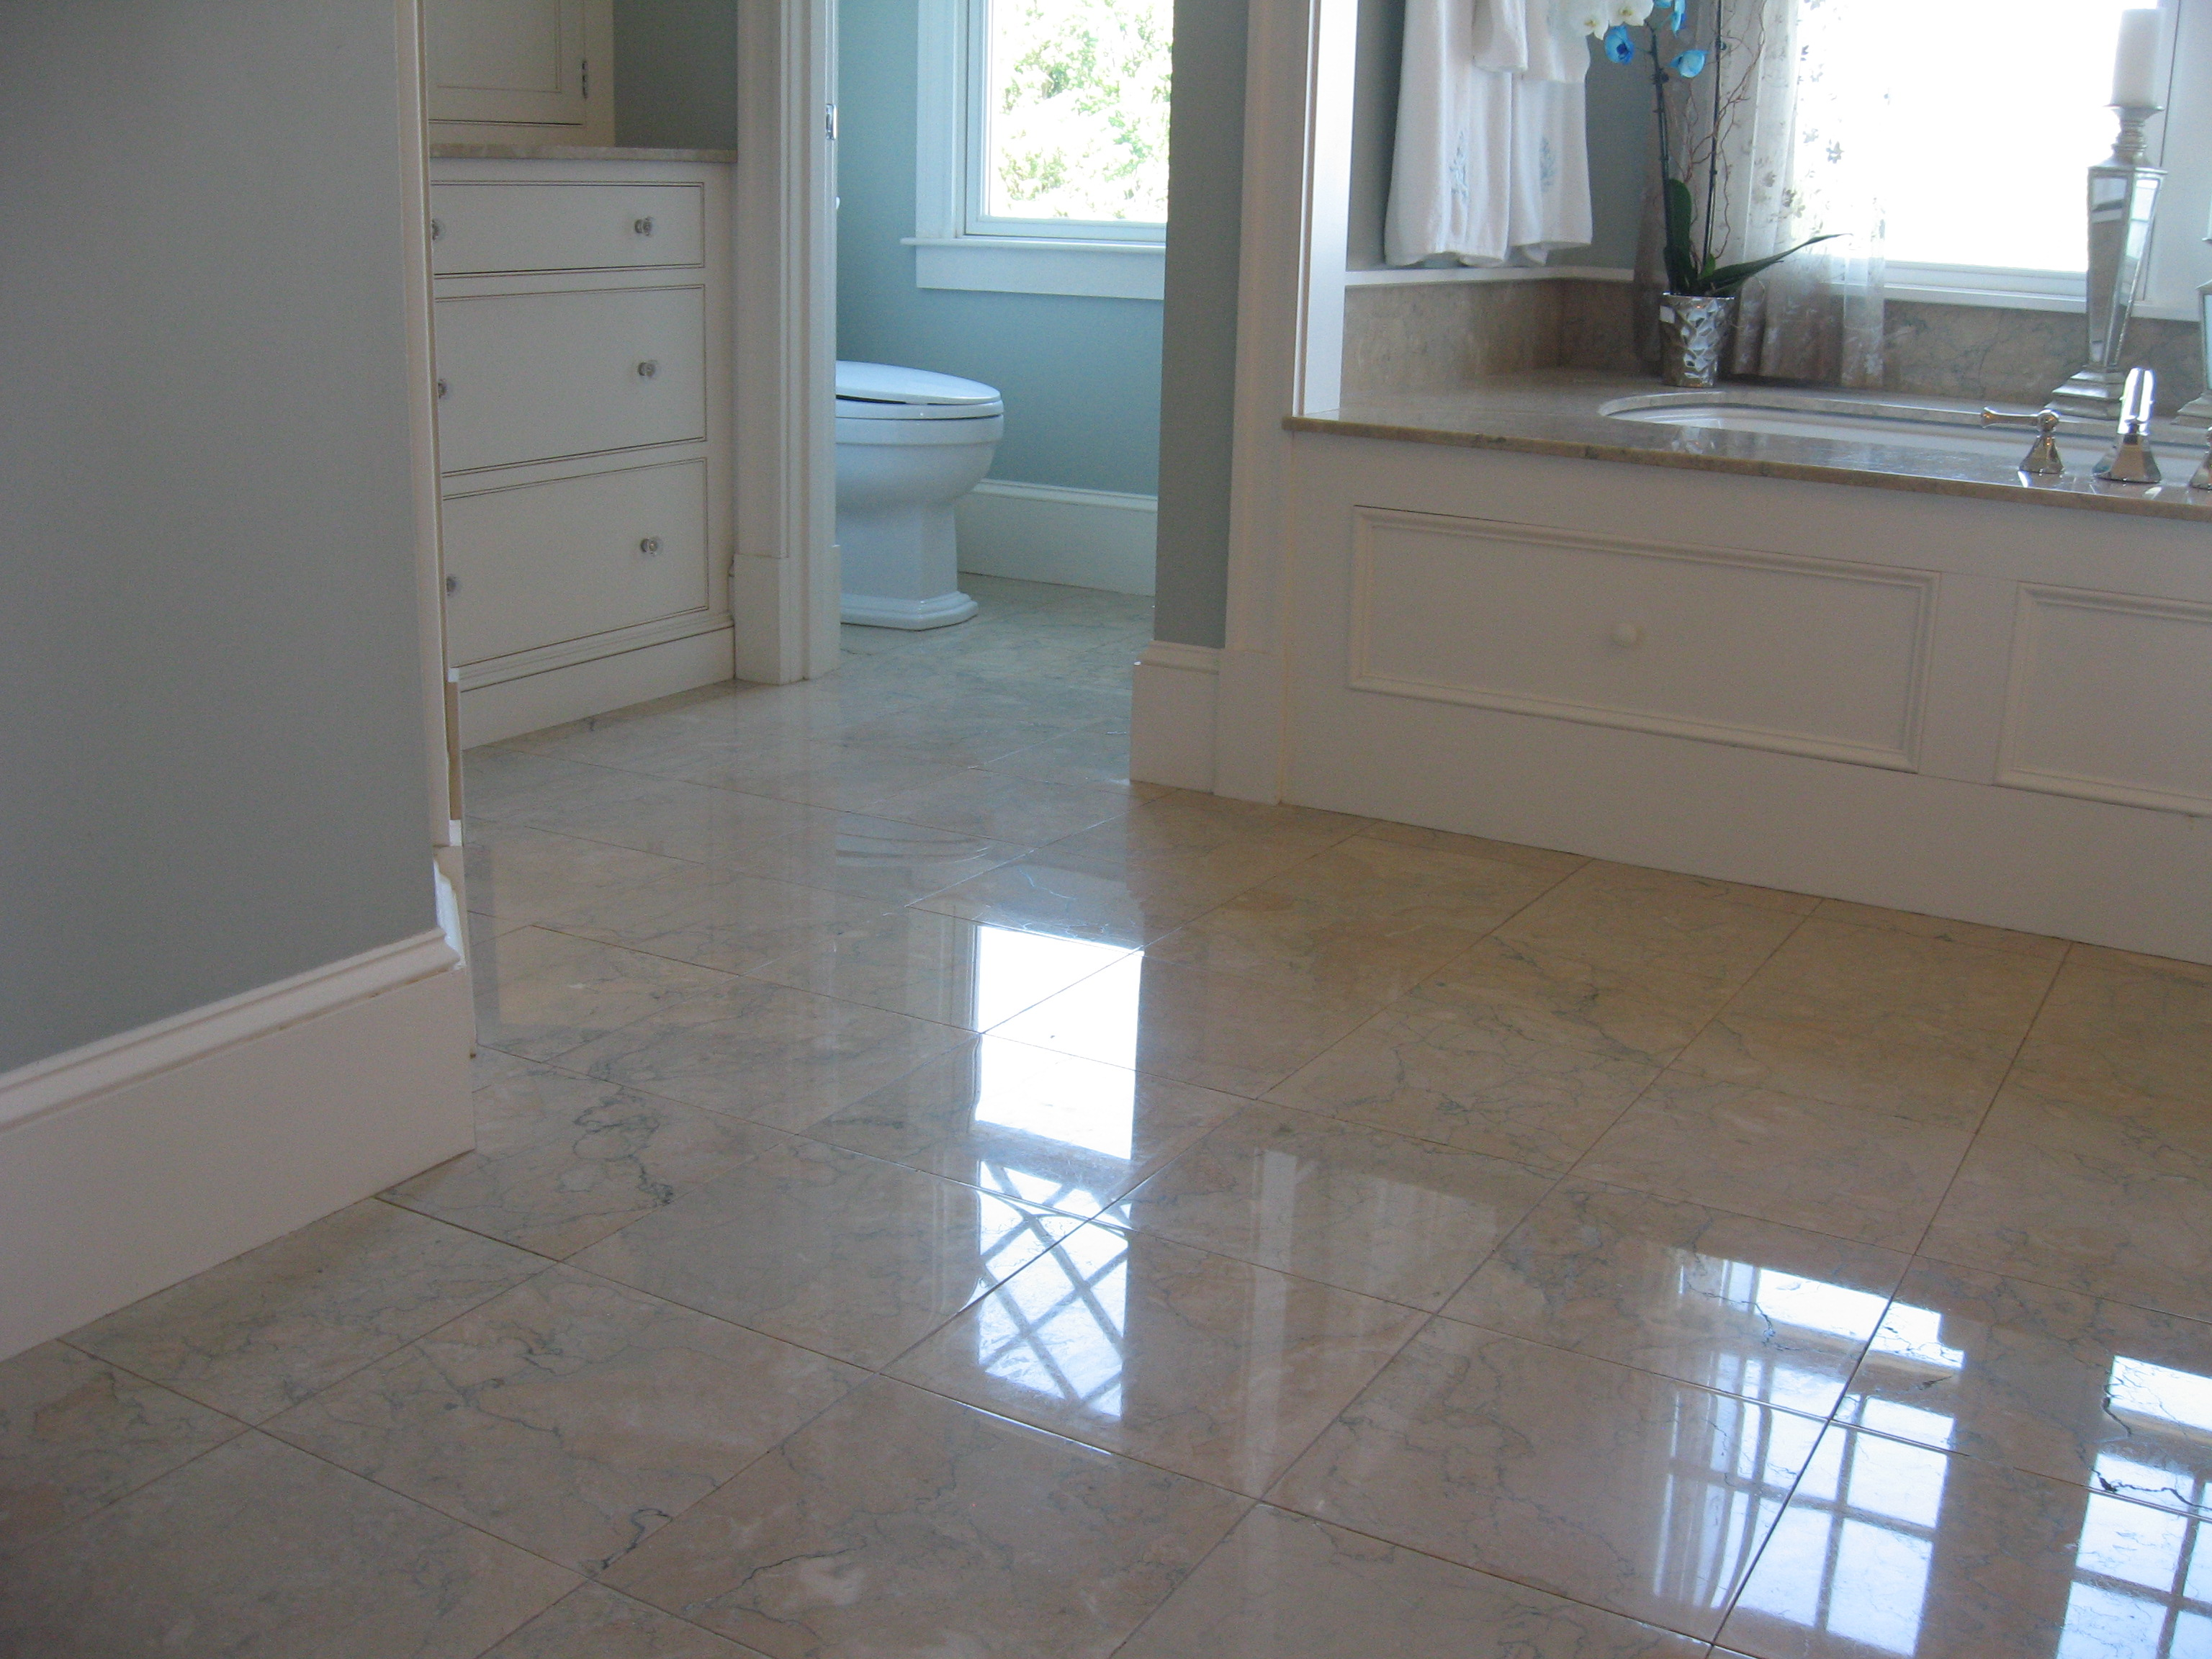 30 great ideas for marble bathroom floor tiles Images of bathroom tile floors